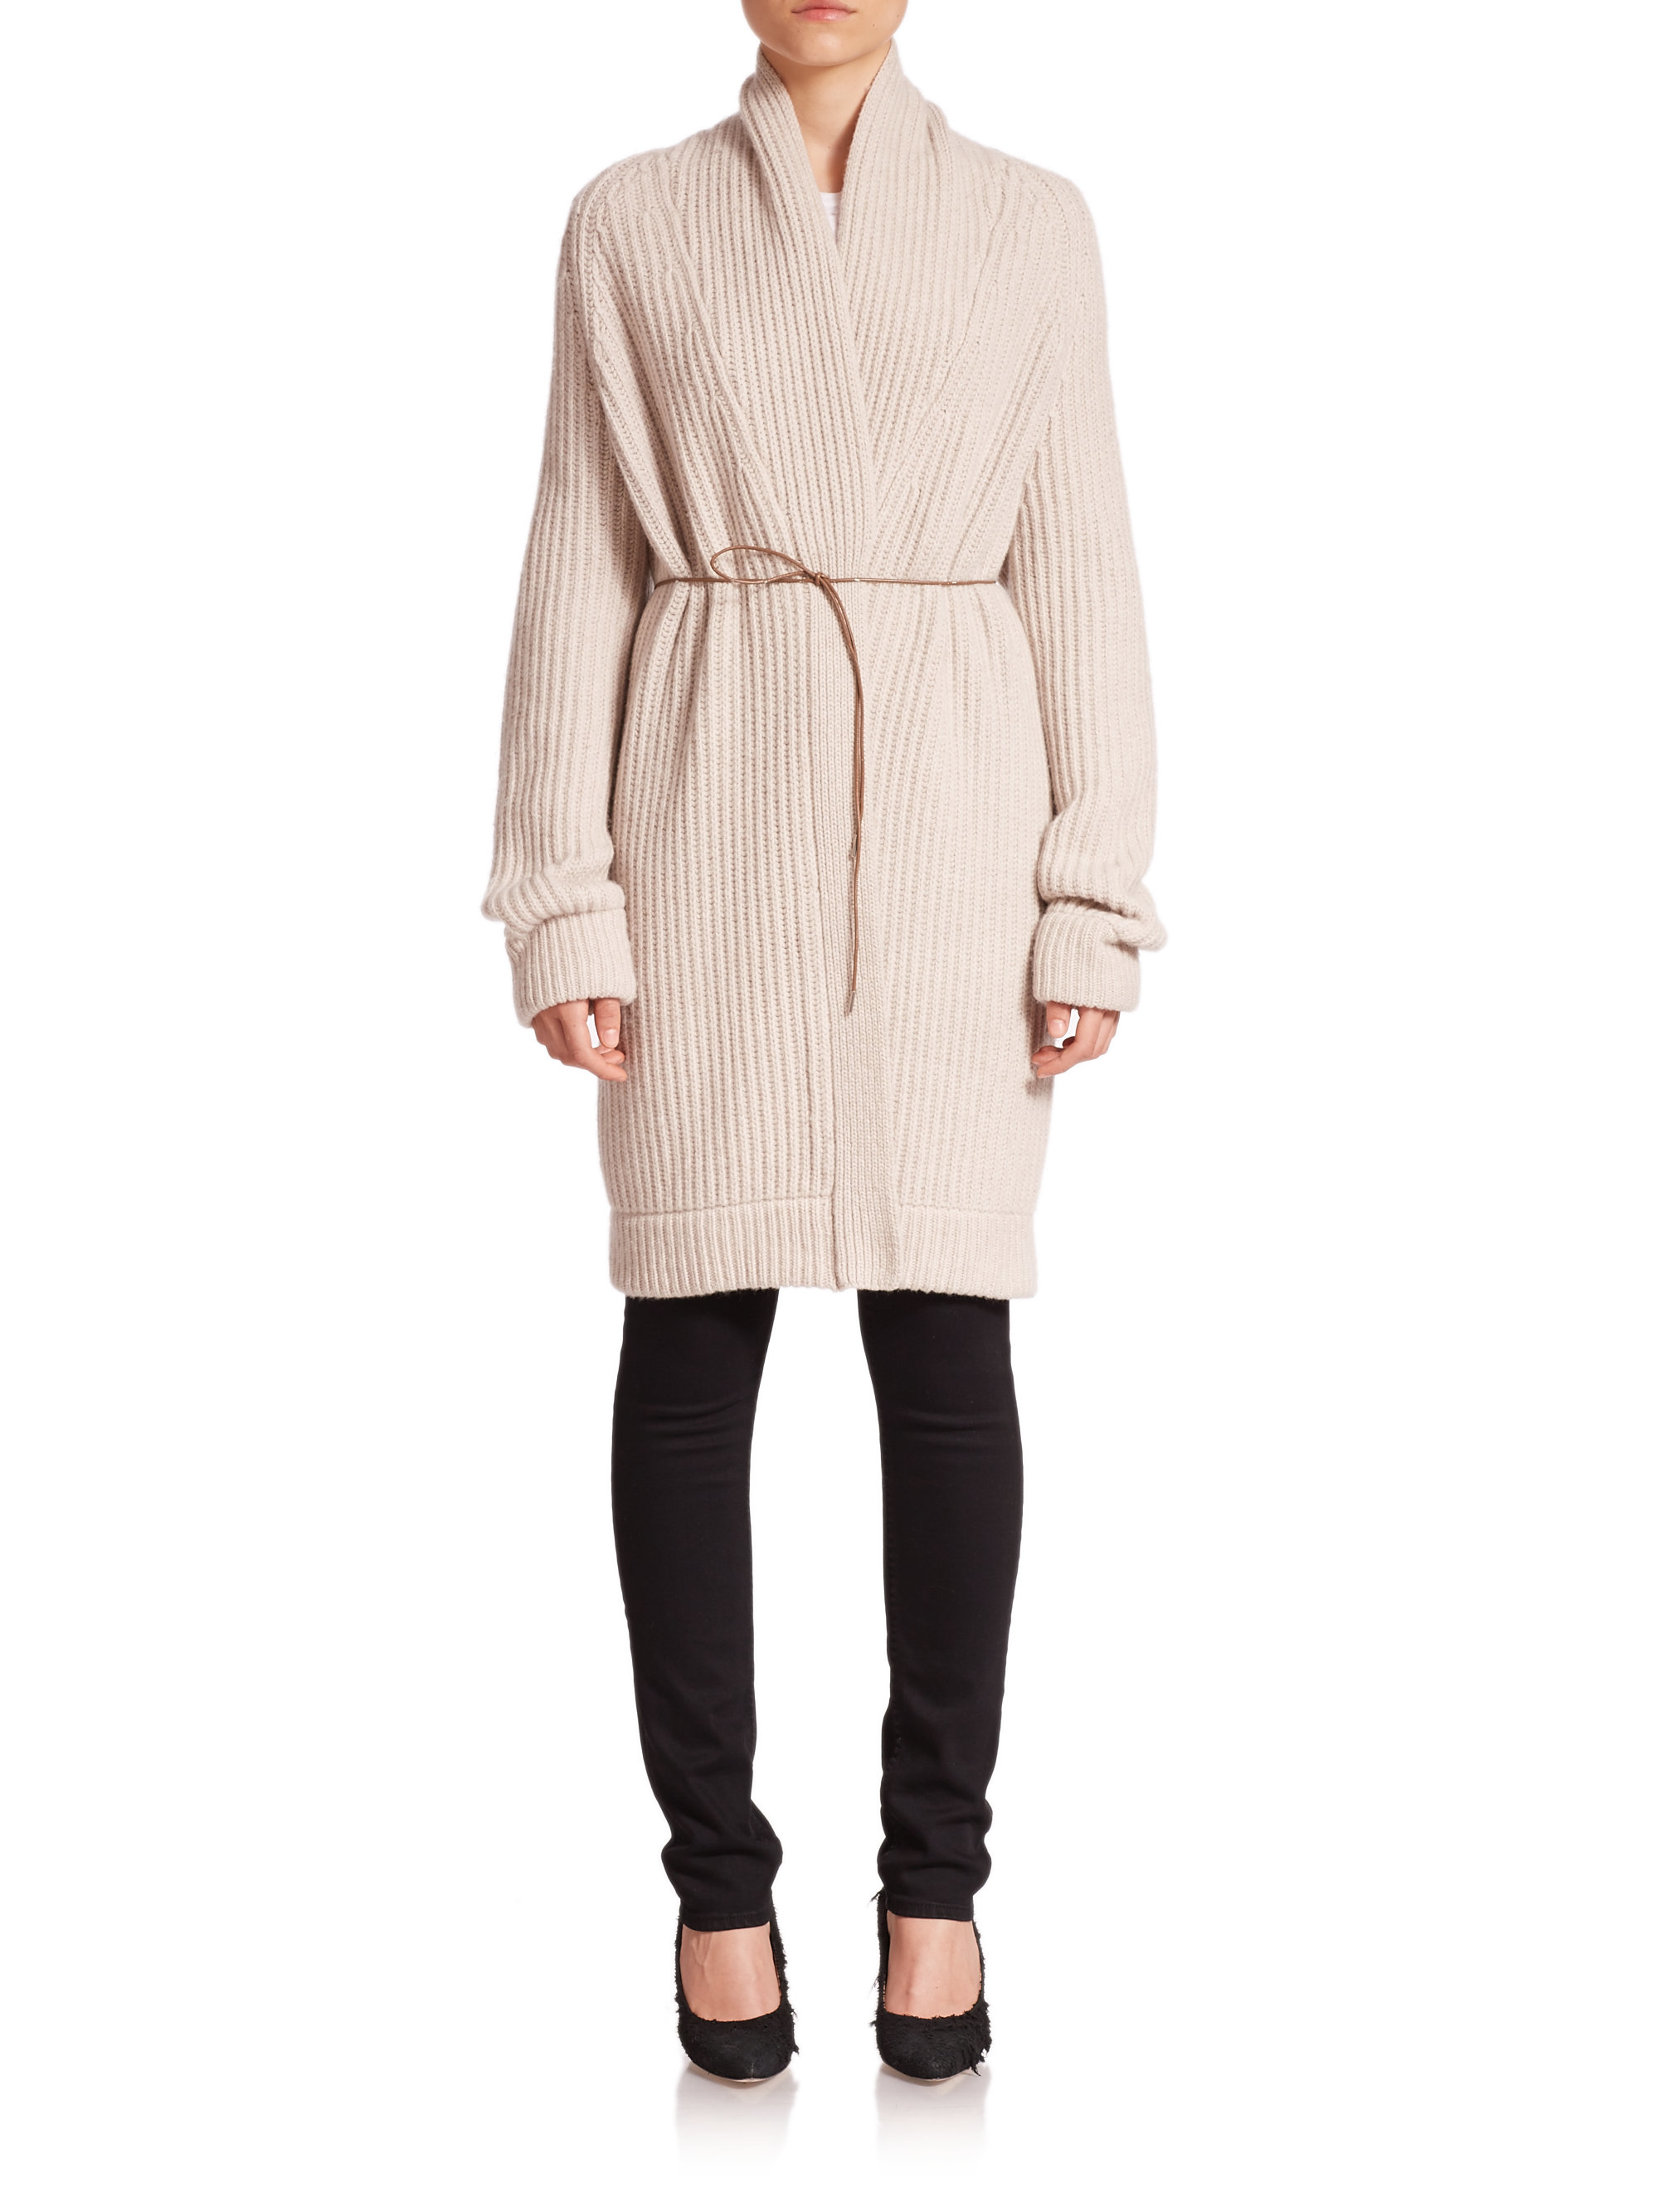 Helmut lang Wool & Cashmere Belted Long Cardigan in Natural | Lyst